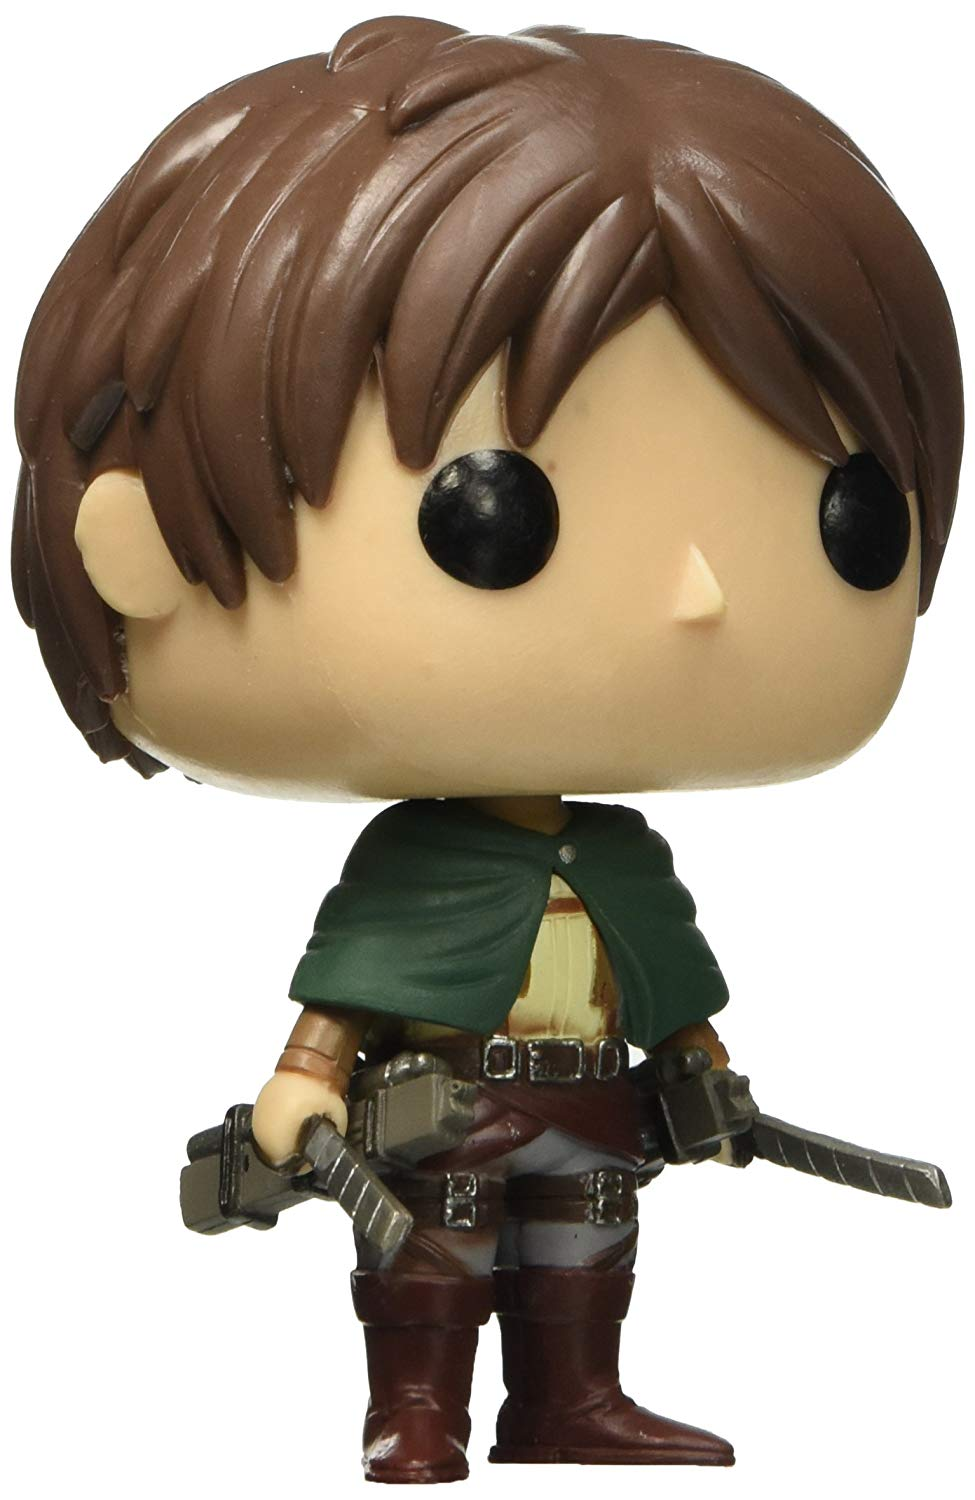 Attack on Titan Eren Jaeger Funko Pop! Anime Vinyl Figure officially licensed product at B.A. Toys.